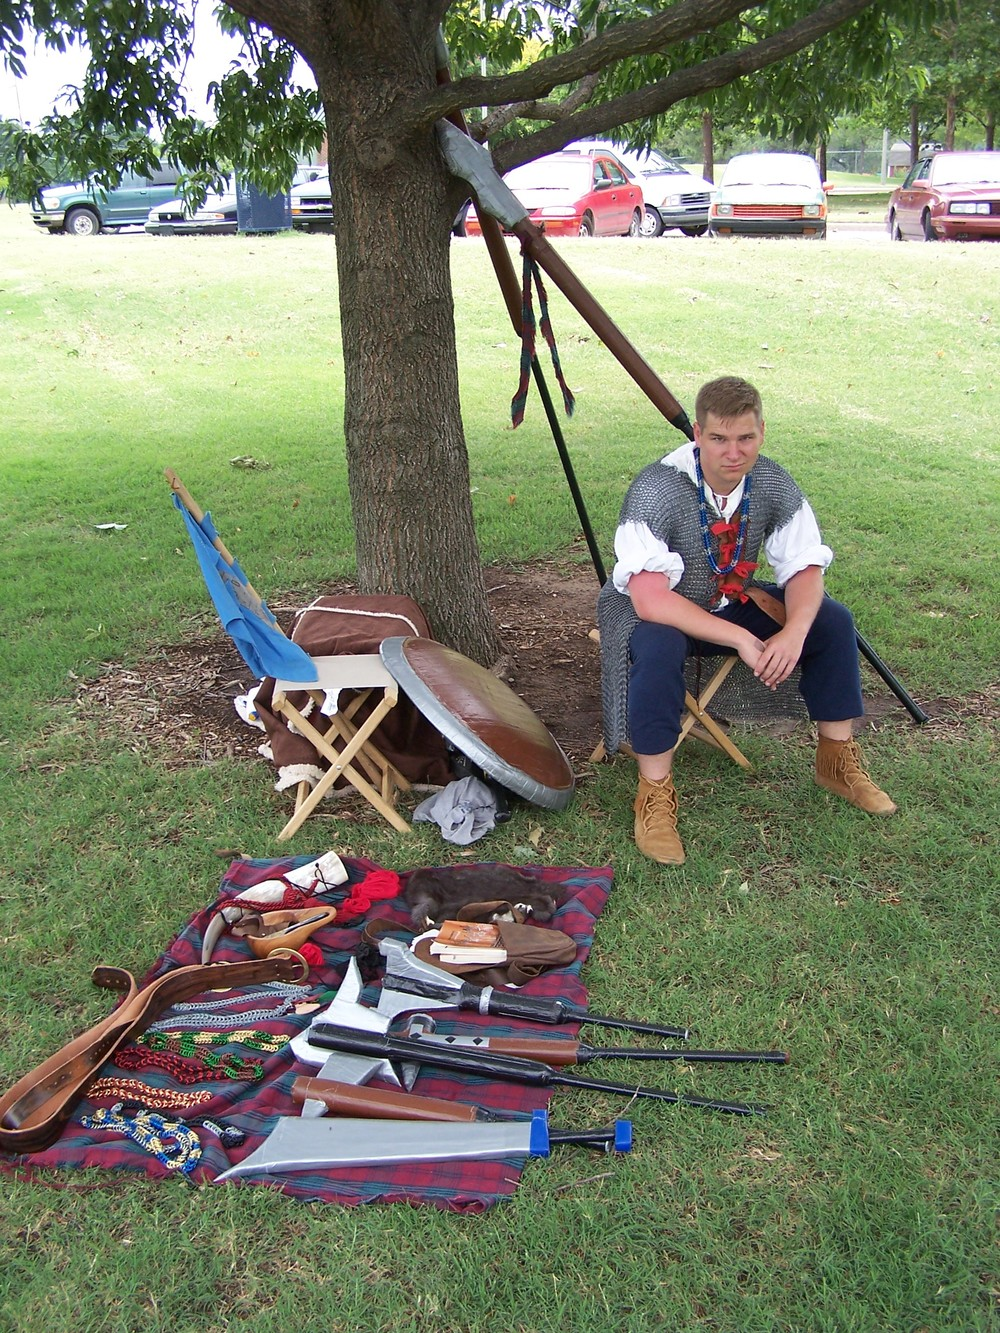 Crafts in armor, decor and gear